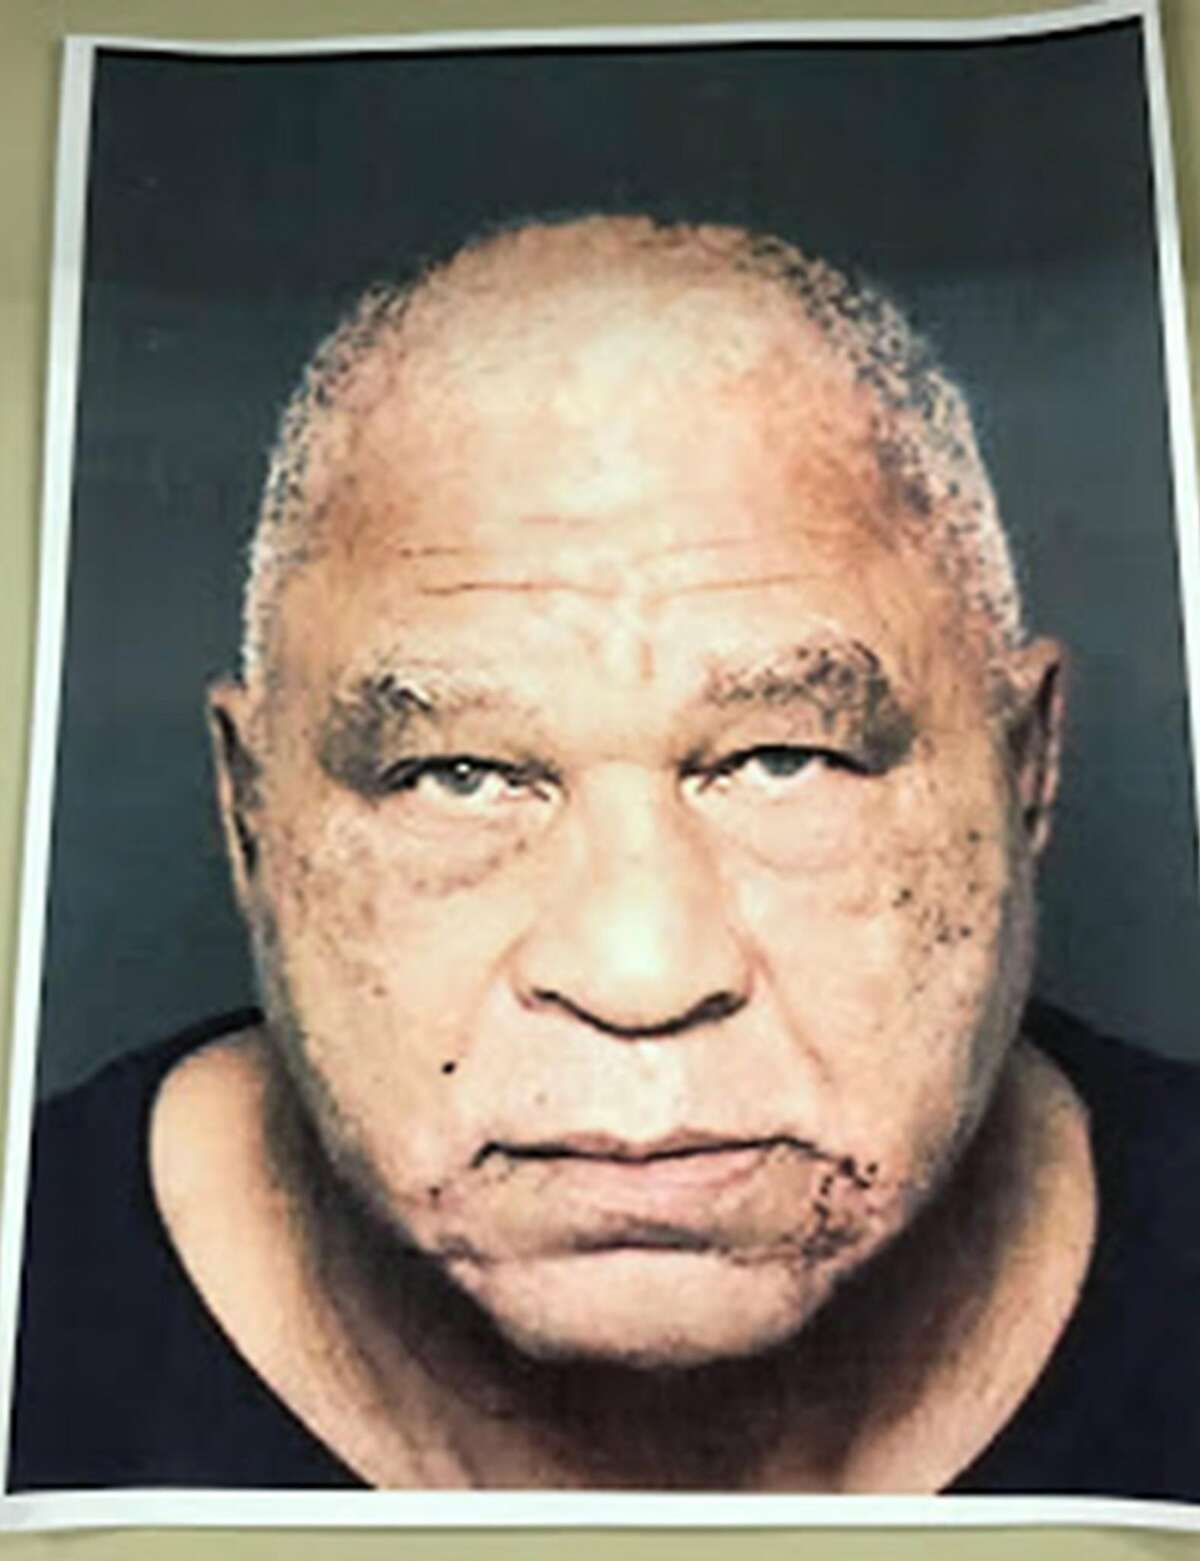 Convicted serial killer Samuel Little. A convicted serial killer who has confessed to murdering more than 90 people in the 1970s and 1980s.